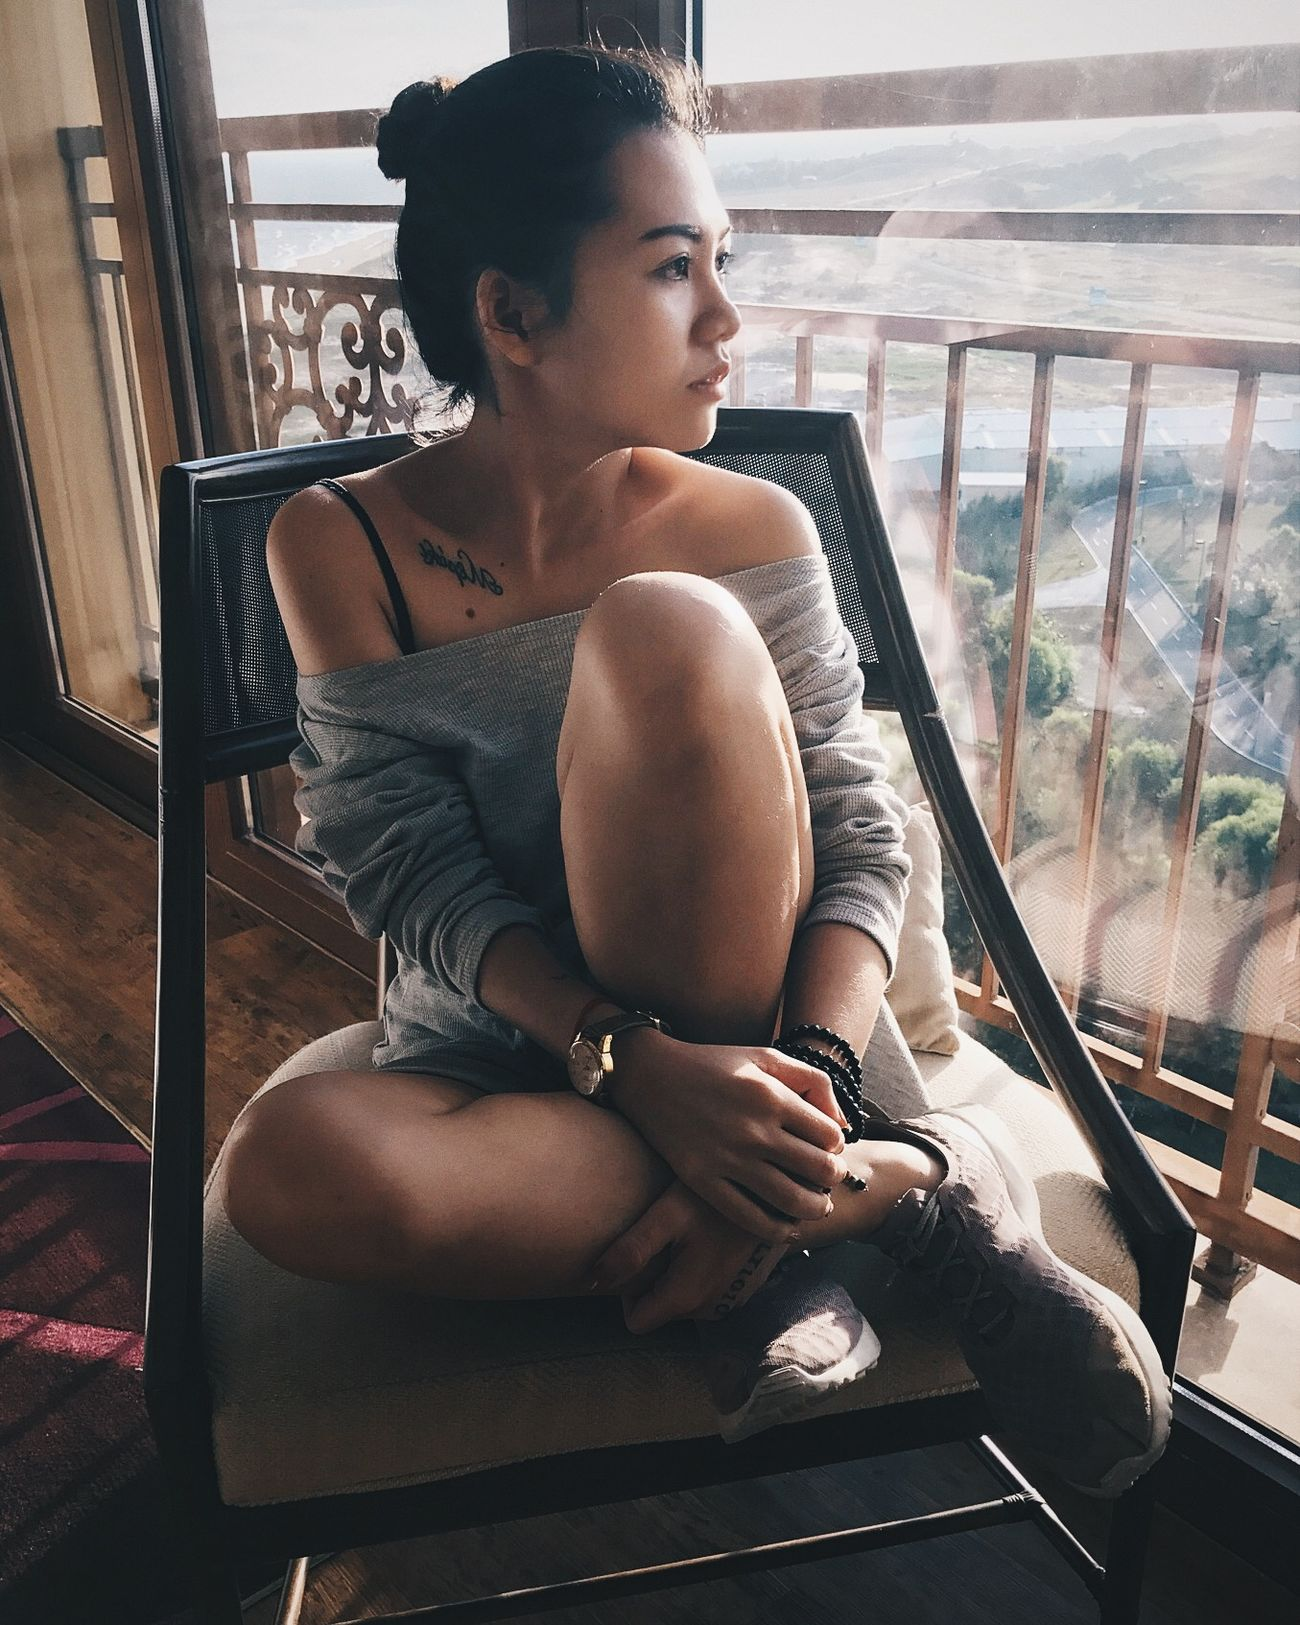 Adults Only Beauty Beauty In Nature Girl Girls One Person One Woman Only Only Women People Portrait Of A Woman Sitting Vietnam Vietnamese View Women Young Adult Young Women